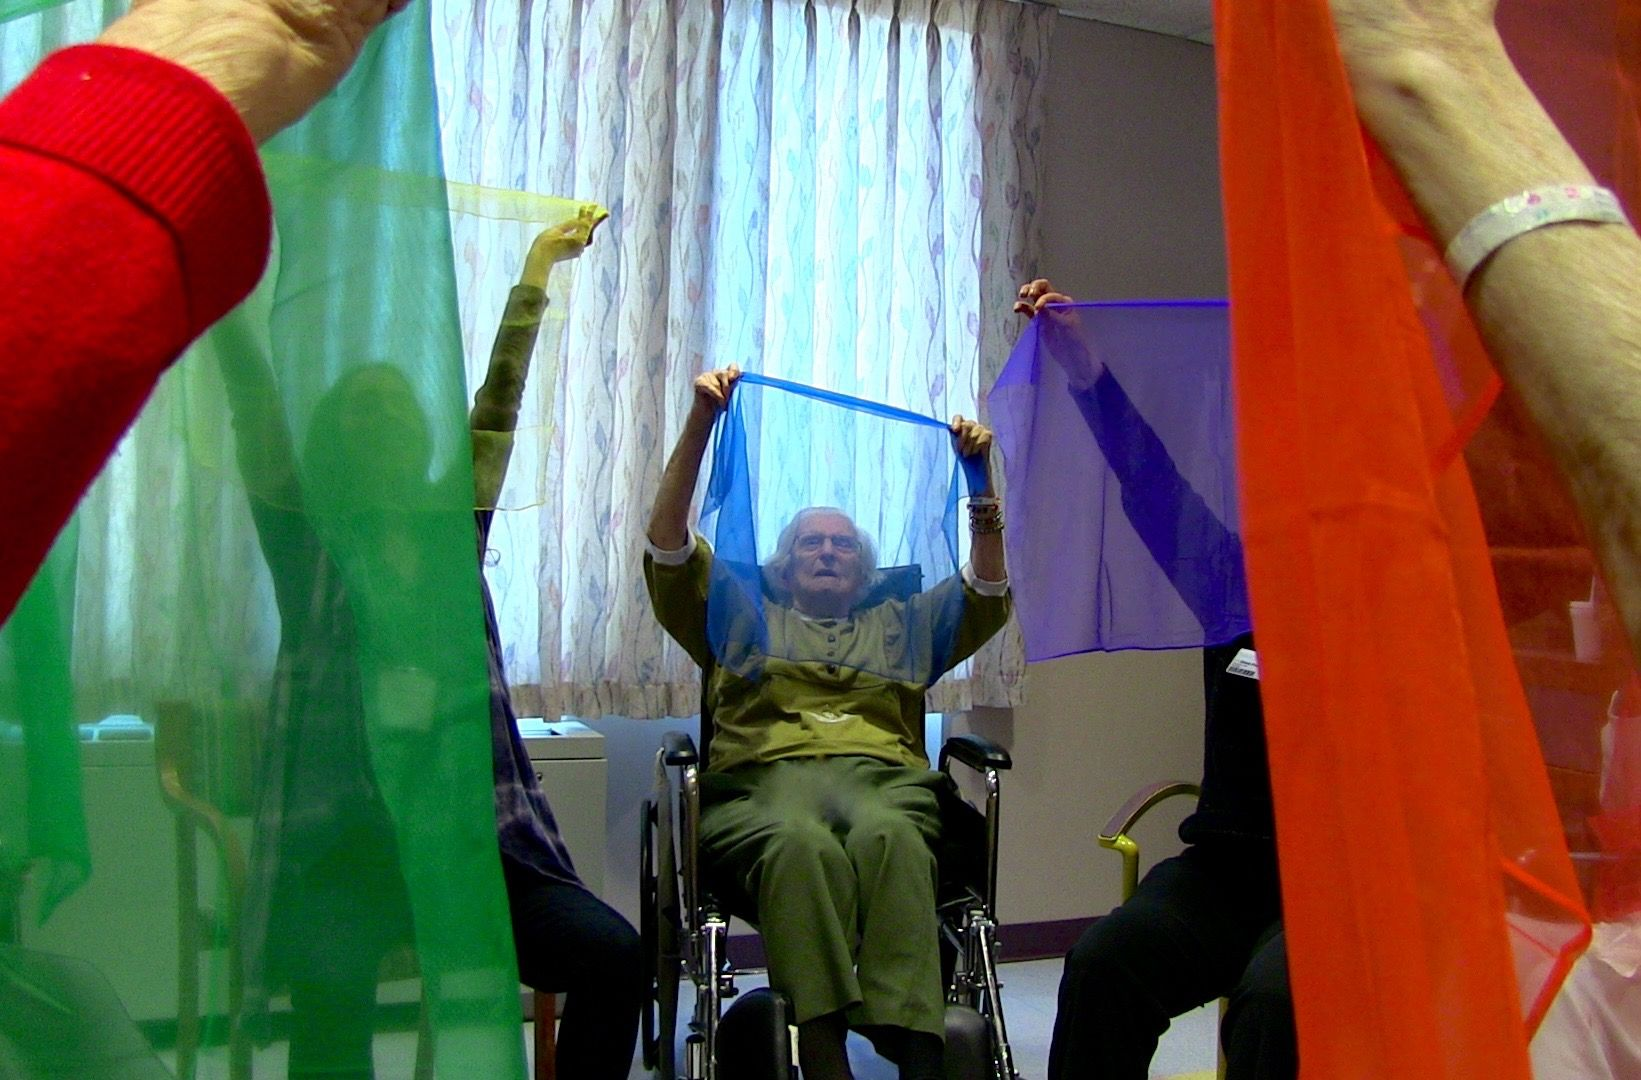 Elders participate in a dance/movement therapy session at